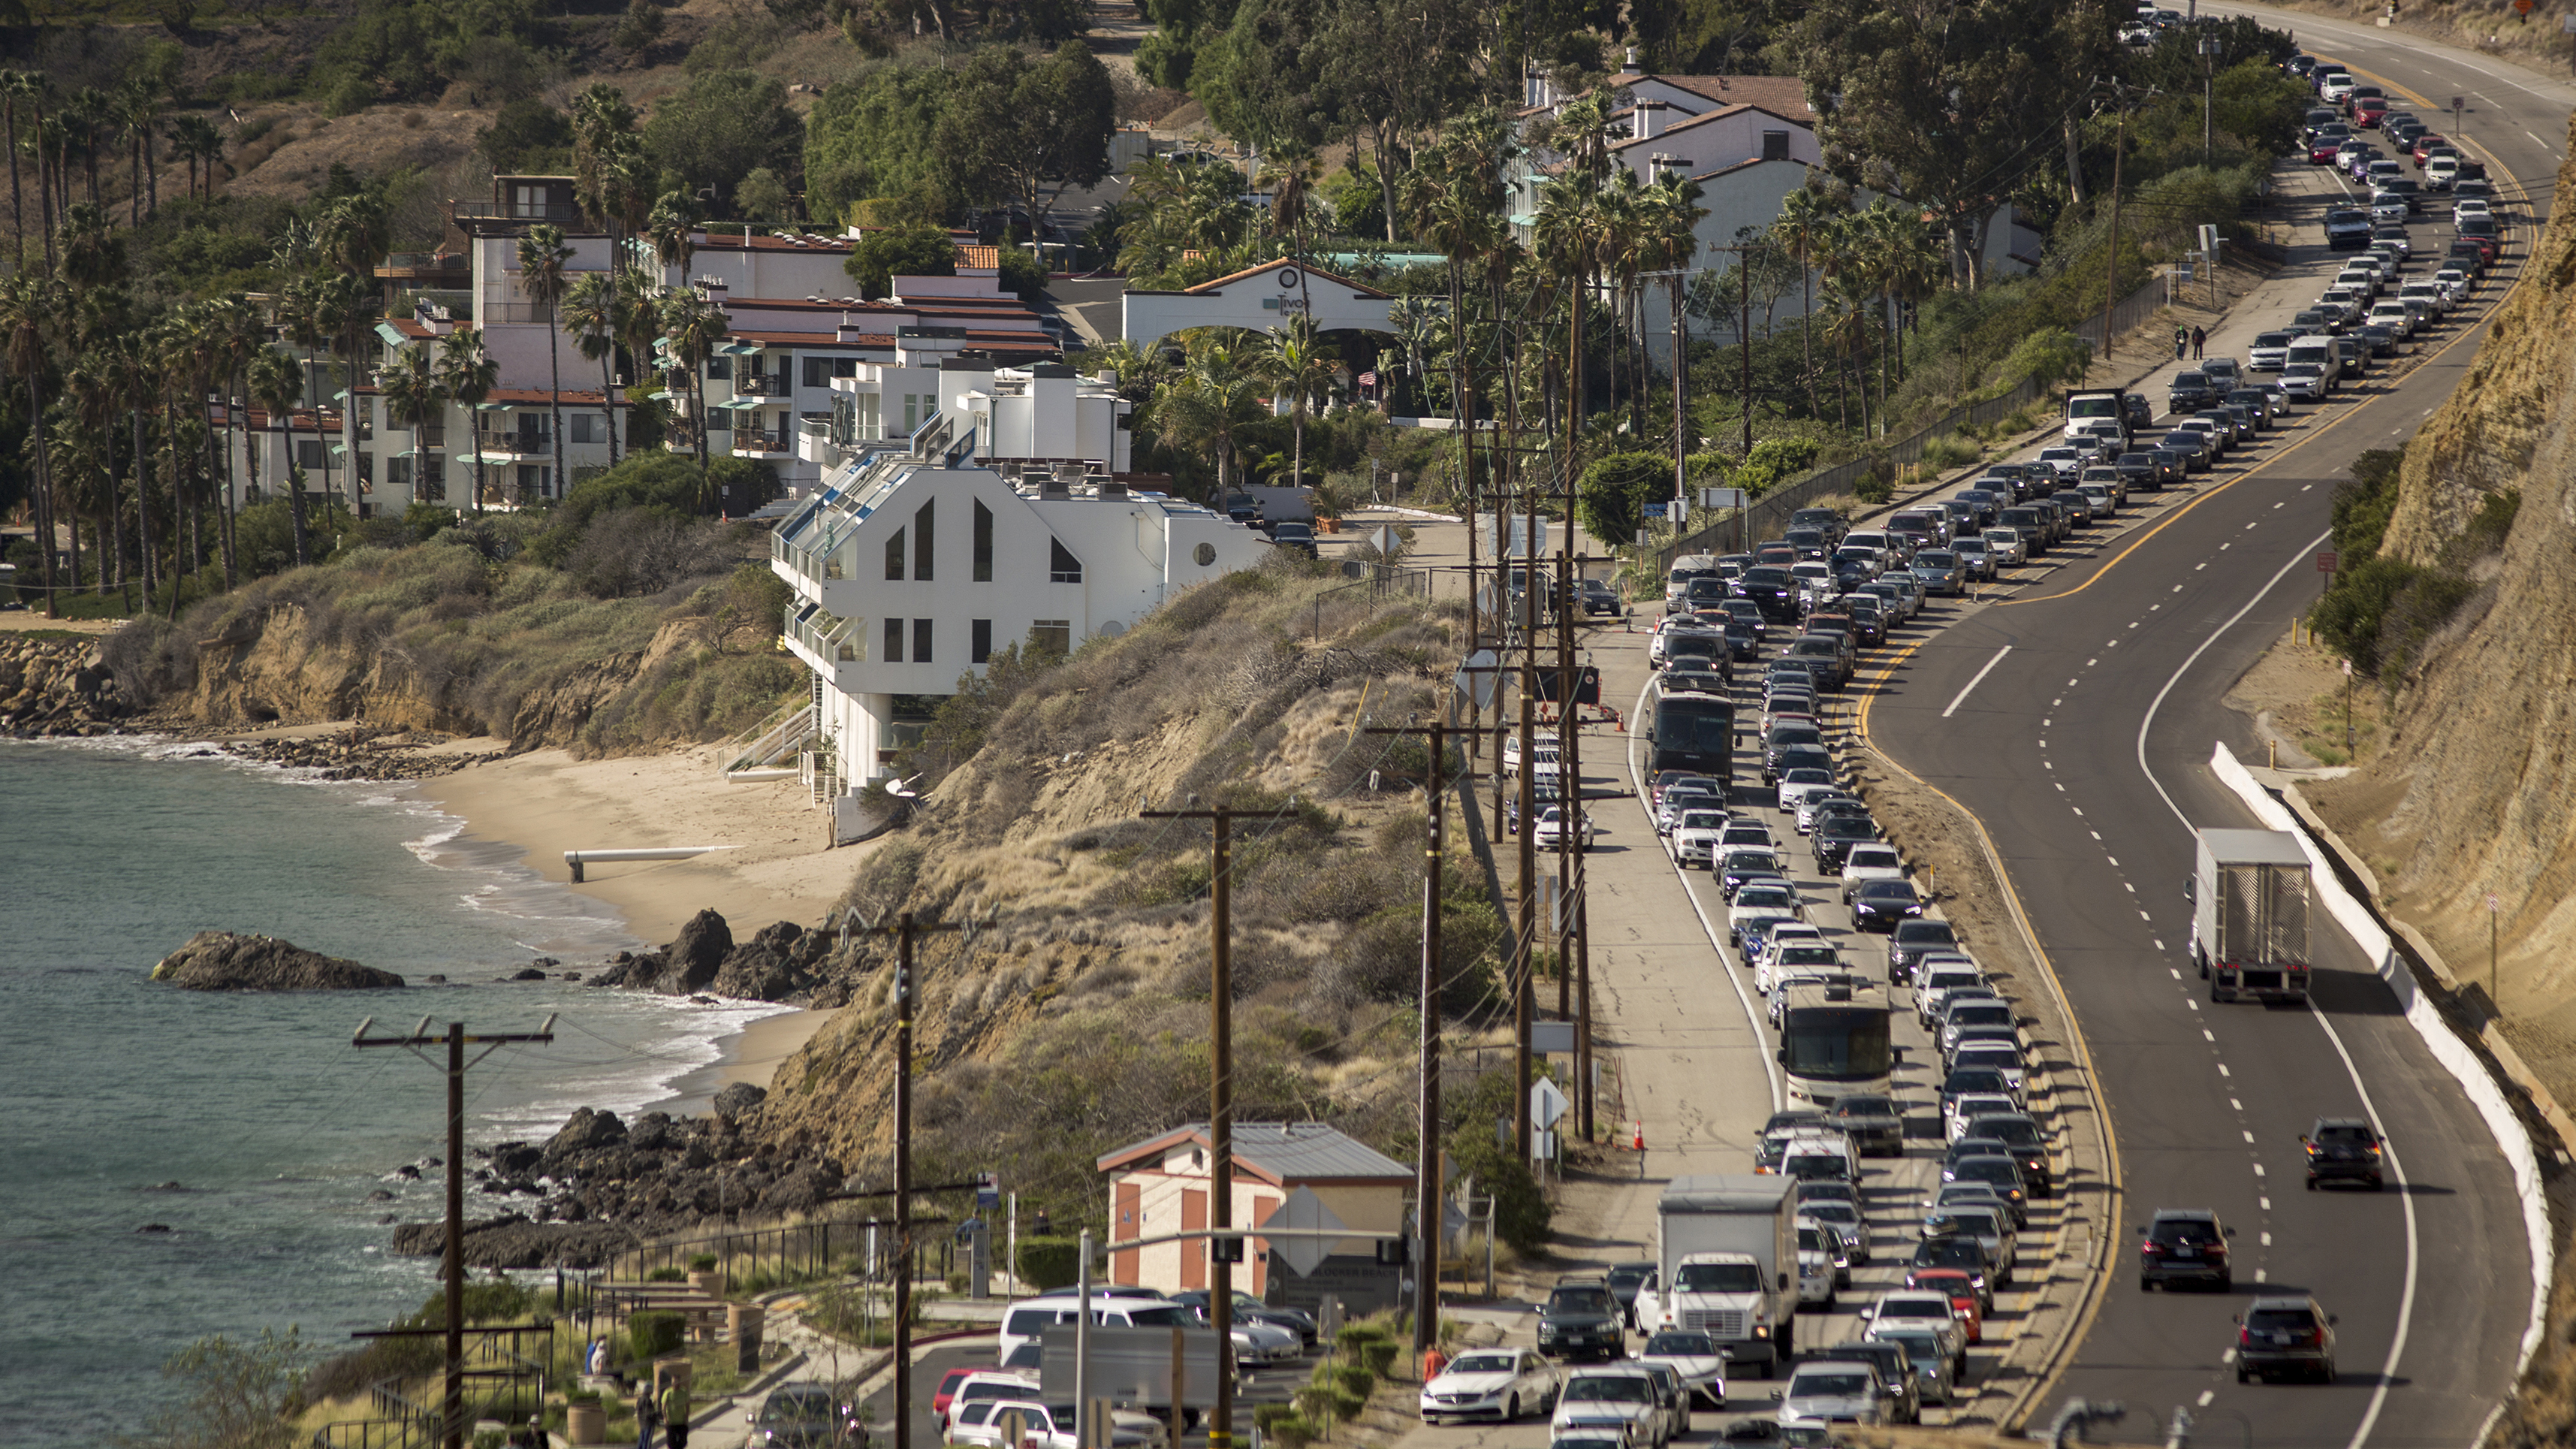 MALIBU, CA - NOVEMBER 09: Traffic jams the southbound lanes of Pacific Coast Highway as all of the city of Malibu is evacuated to flee advancing flames during the Woolsey Fire on November 9, 2018 in Malibu, California. About 75,000 homes have been evacuated in Los Angeles and Ventura counties due to two fires in the region. (Photo by David McNew/Getty Images)